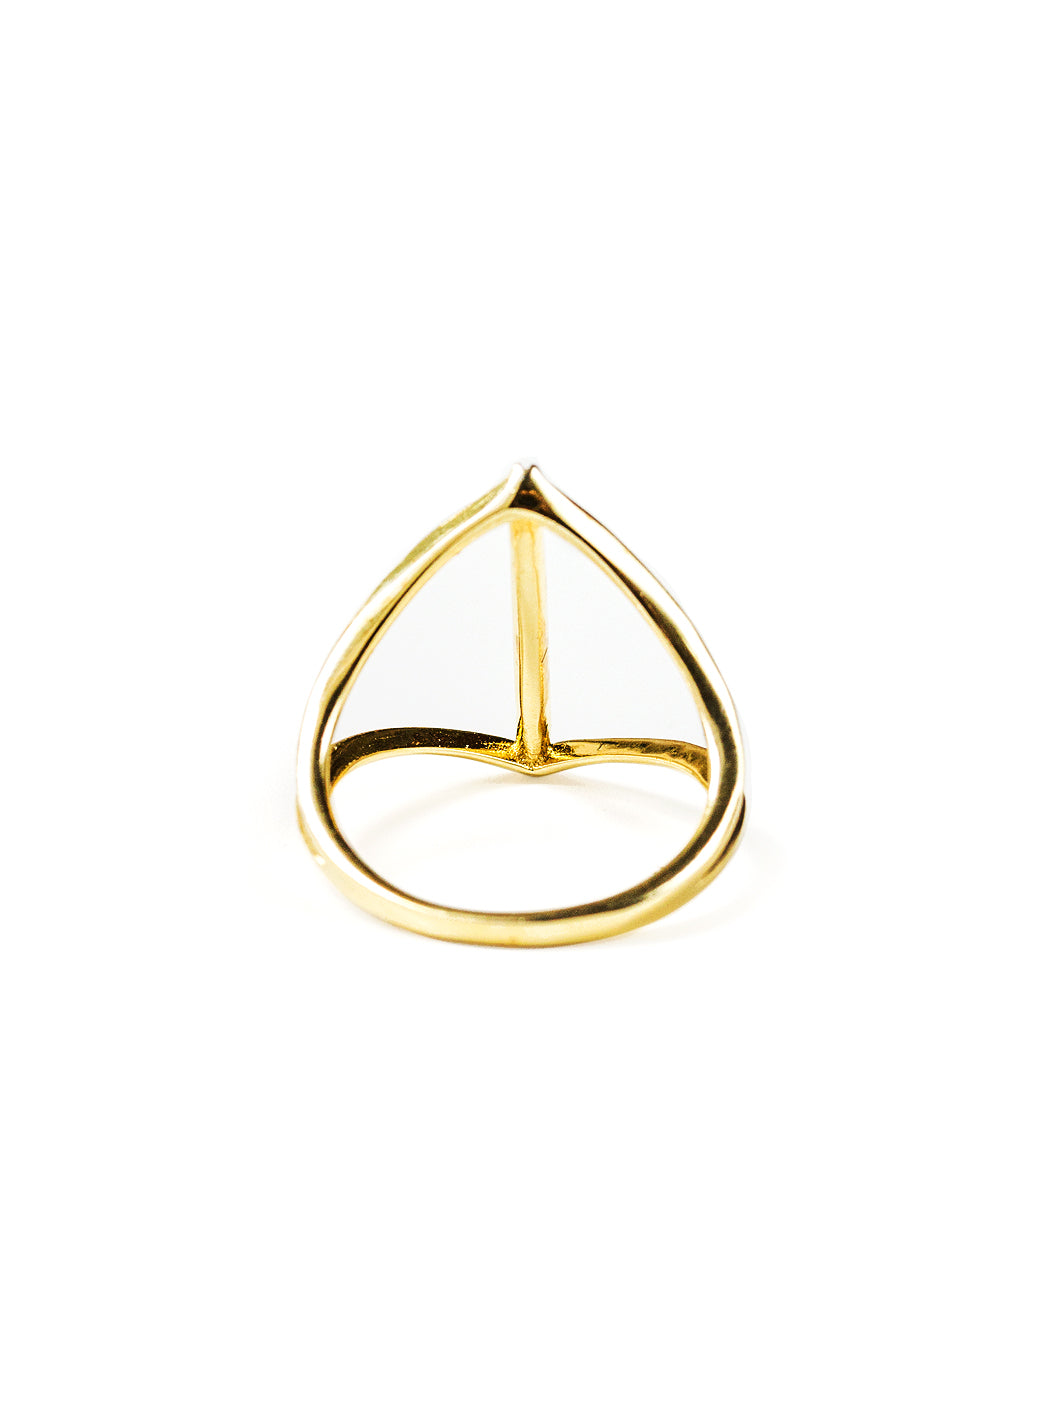 Audra Ring, Rings - AMY O. Jewelry